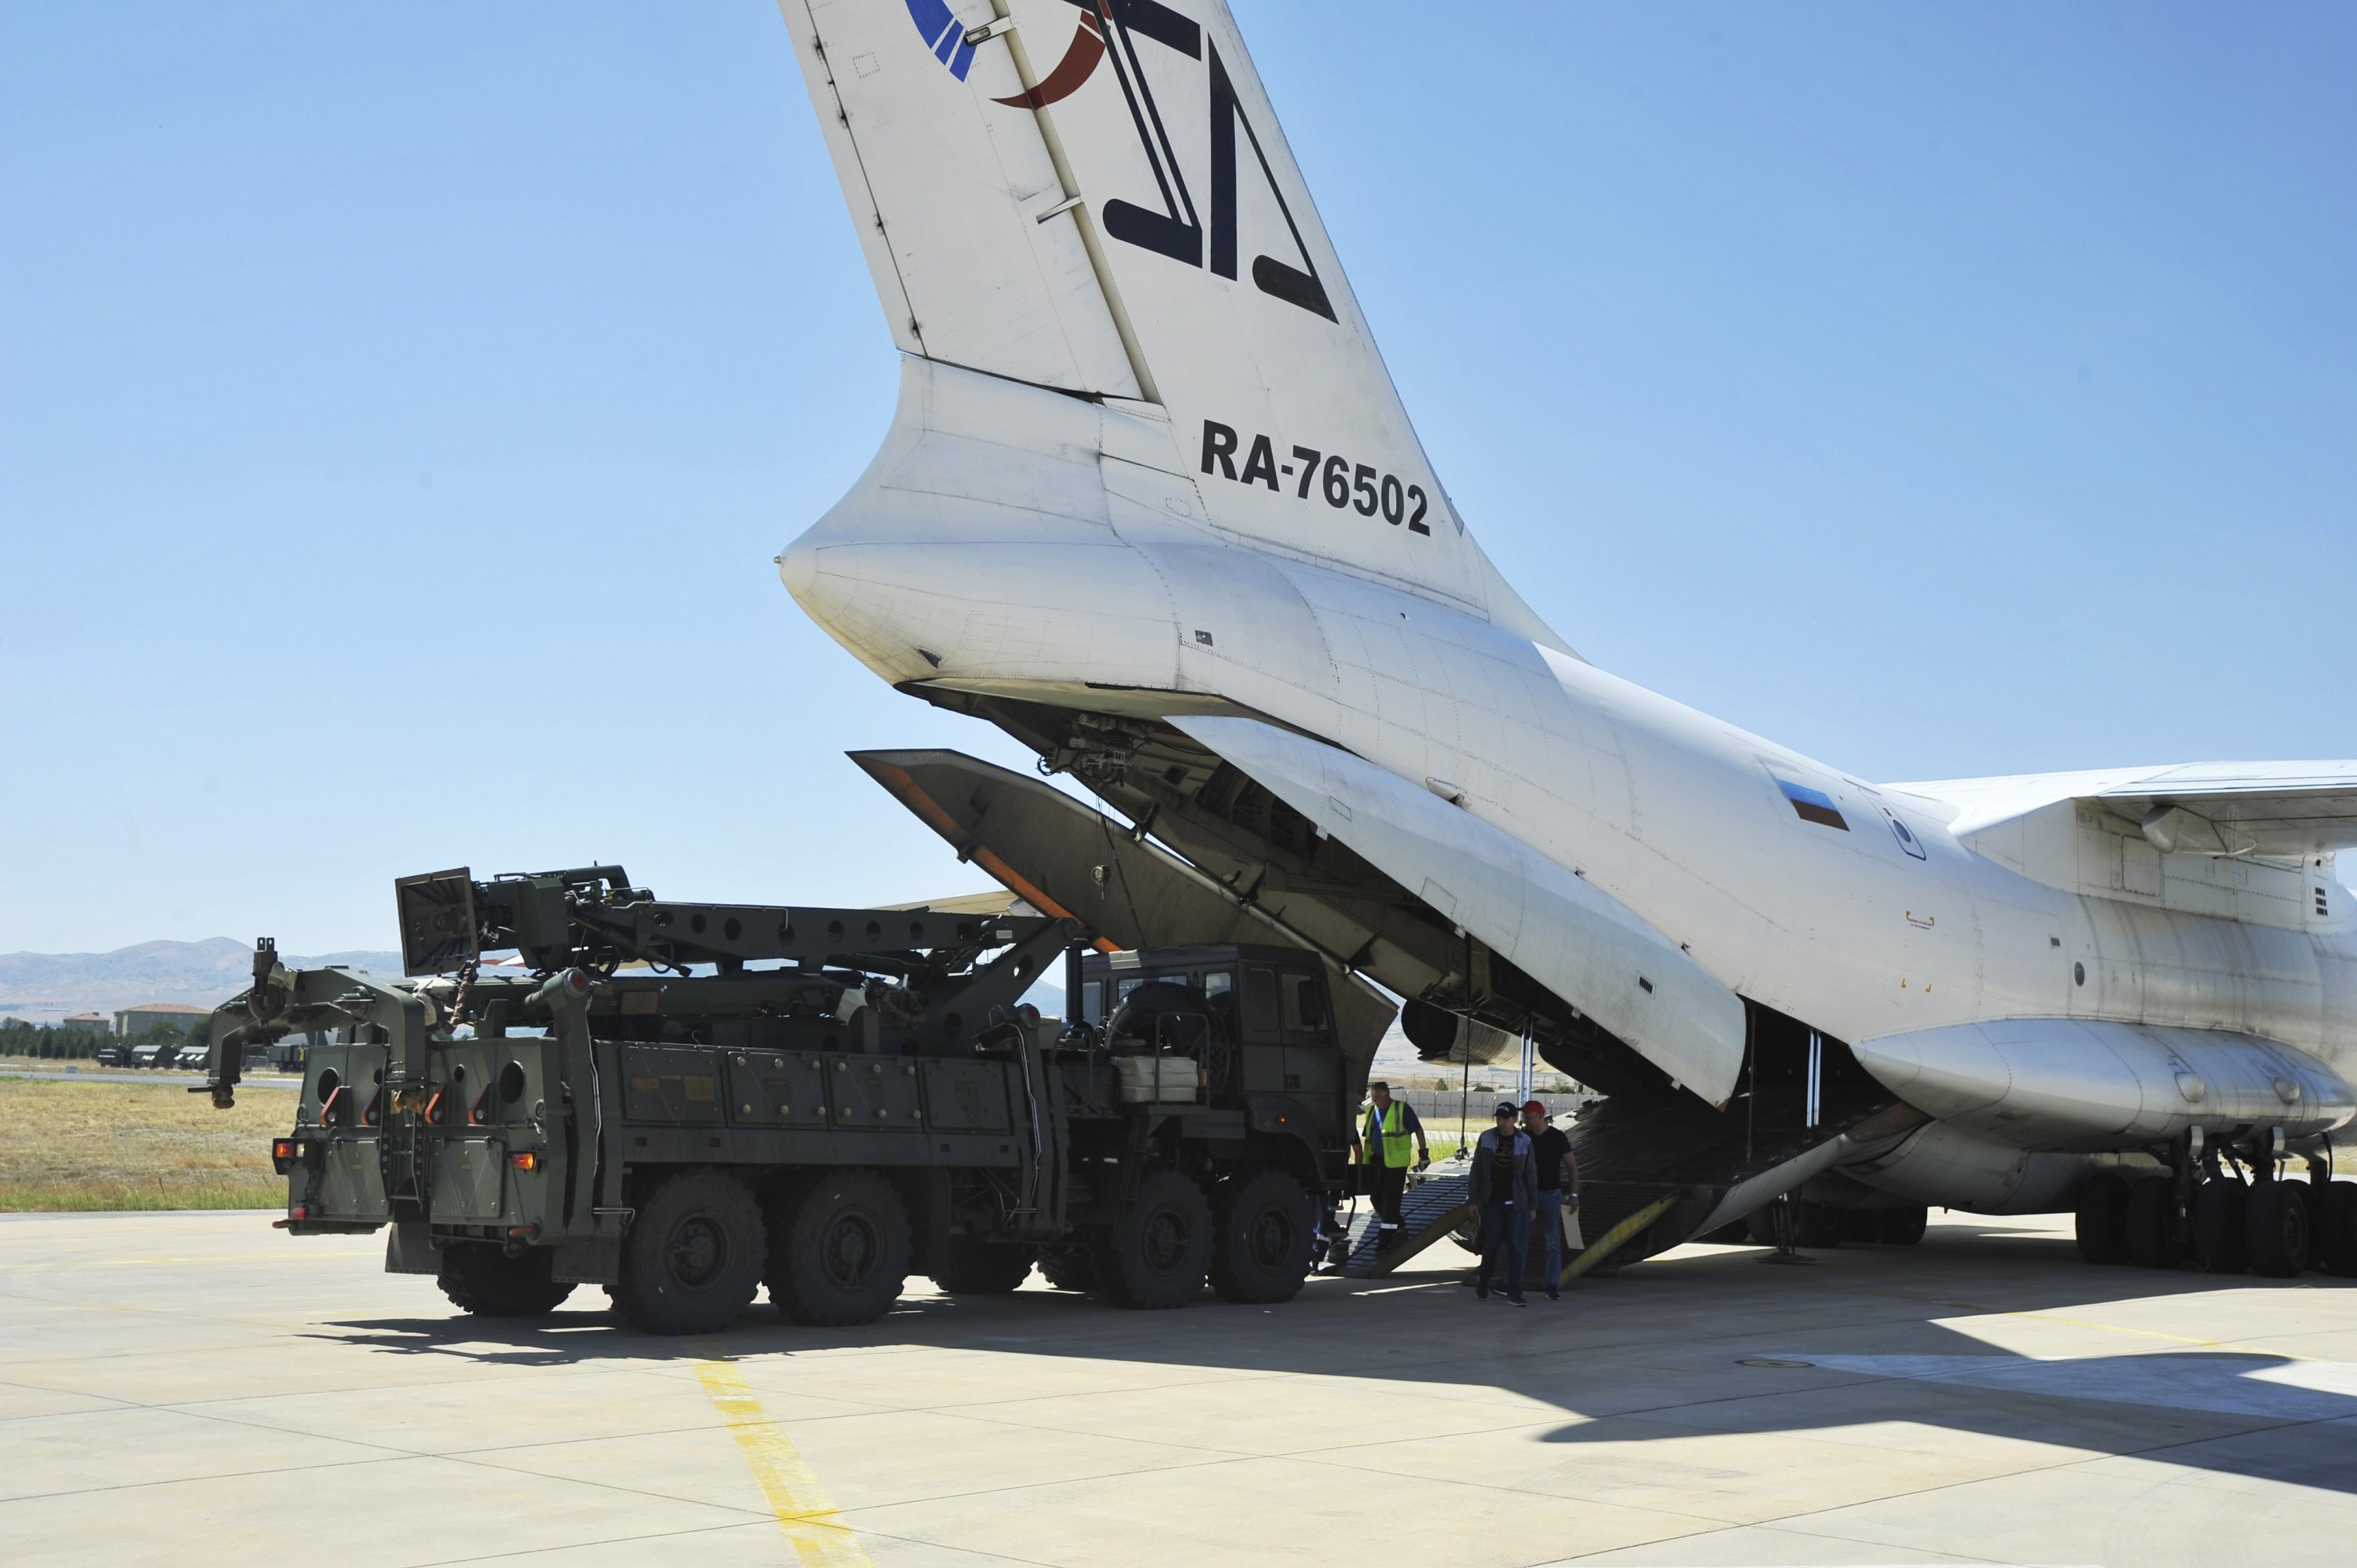 A Russian transport aircraft unloads parts of the S-400 air defense systems at Mürted military airport outside Ankara, Turkey, Aug. 27, 2019. (AP Photo)